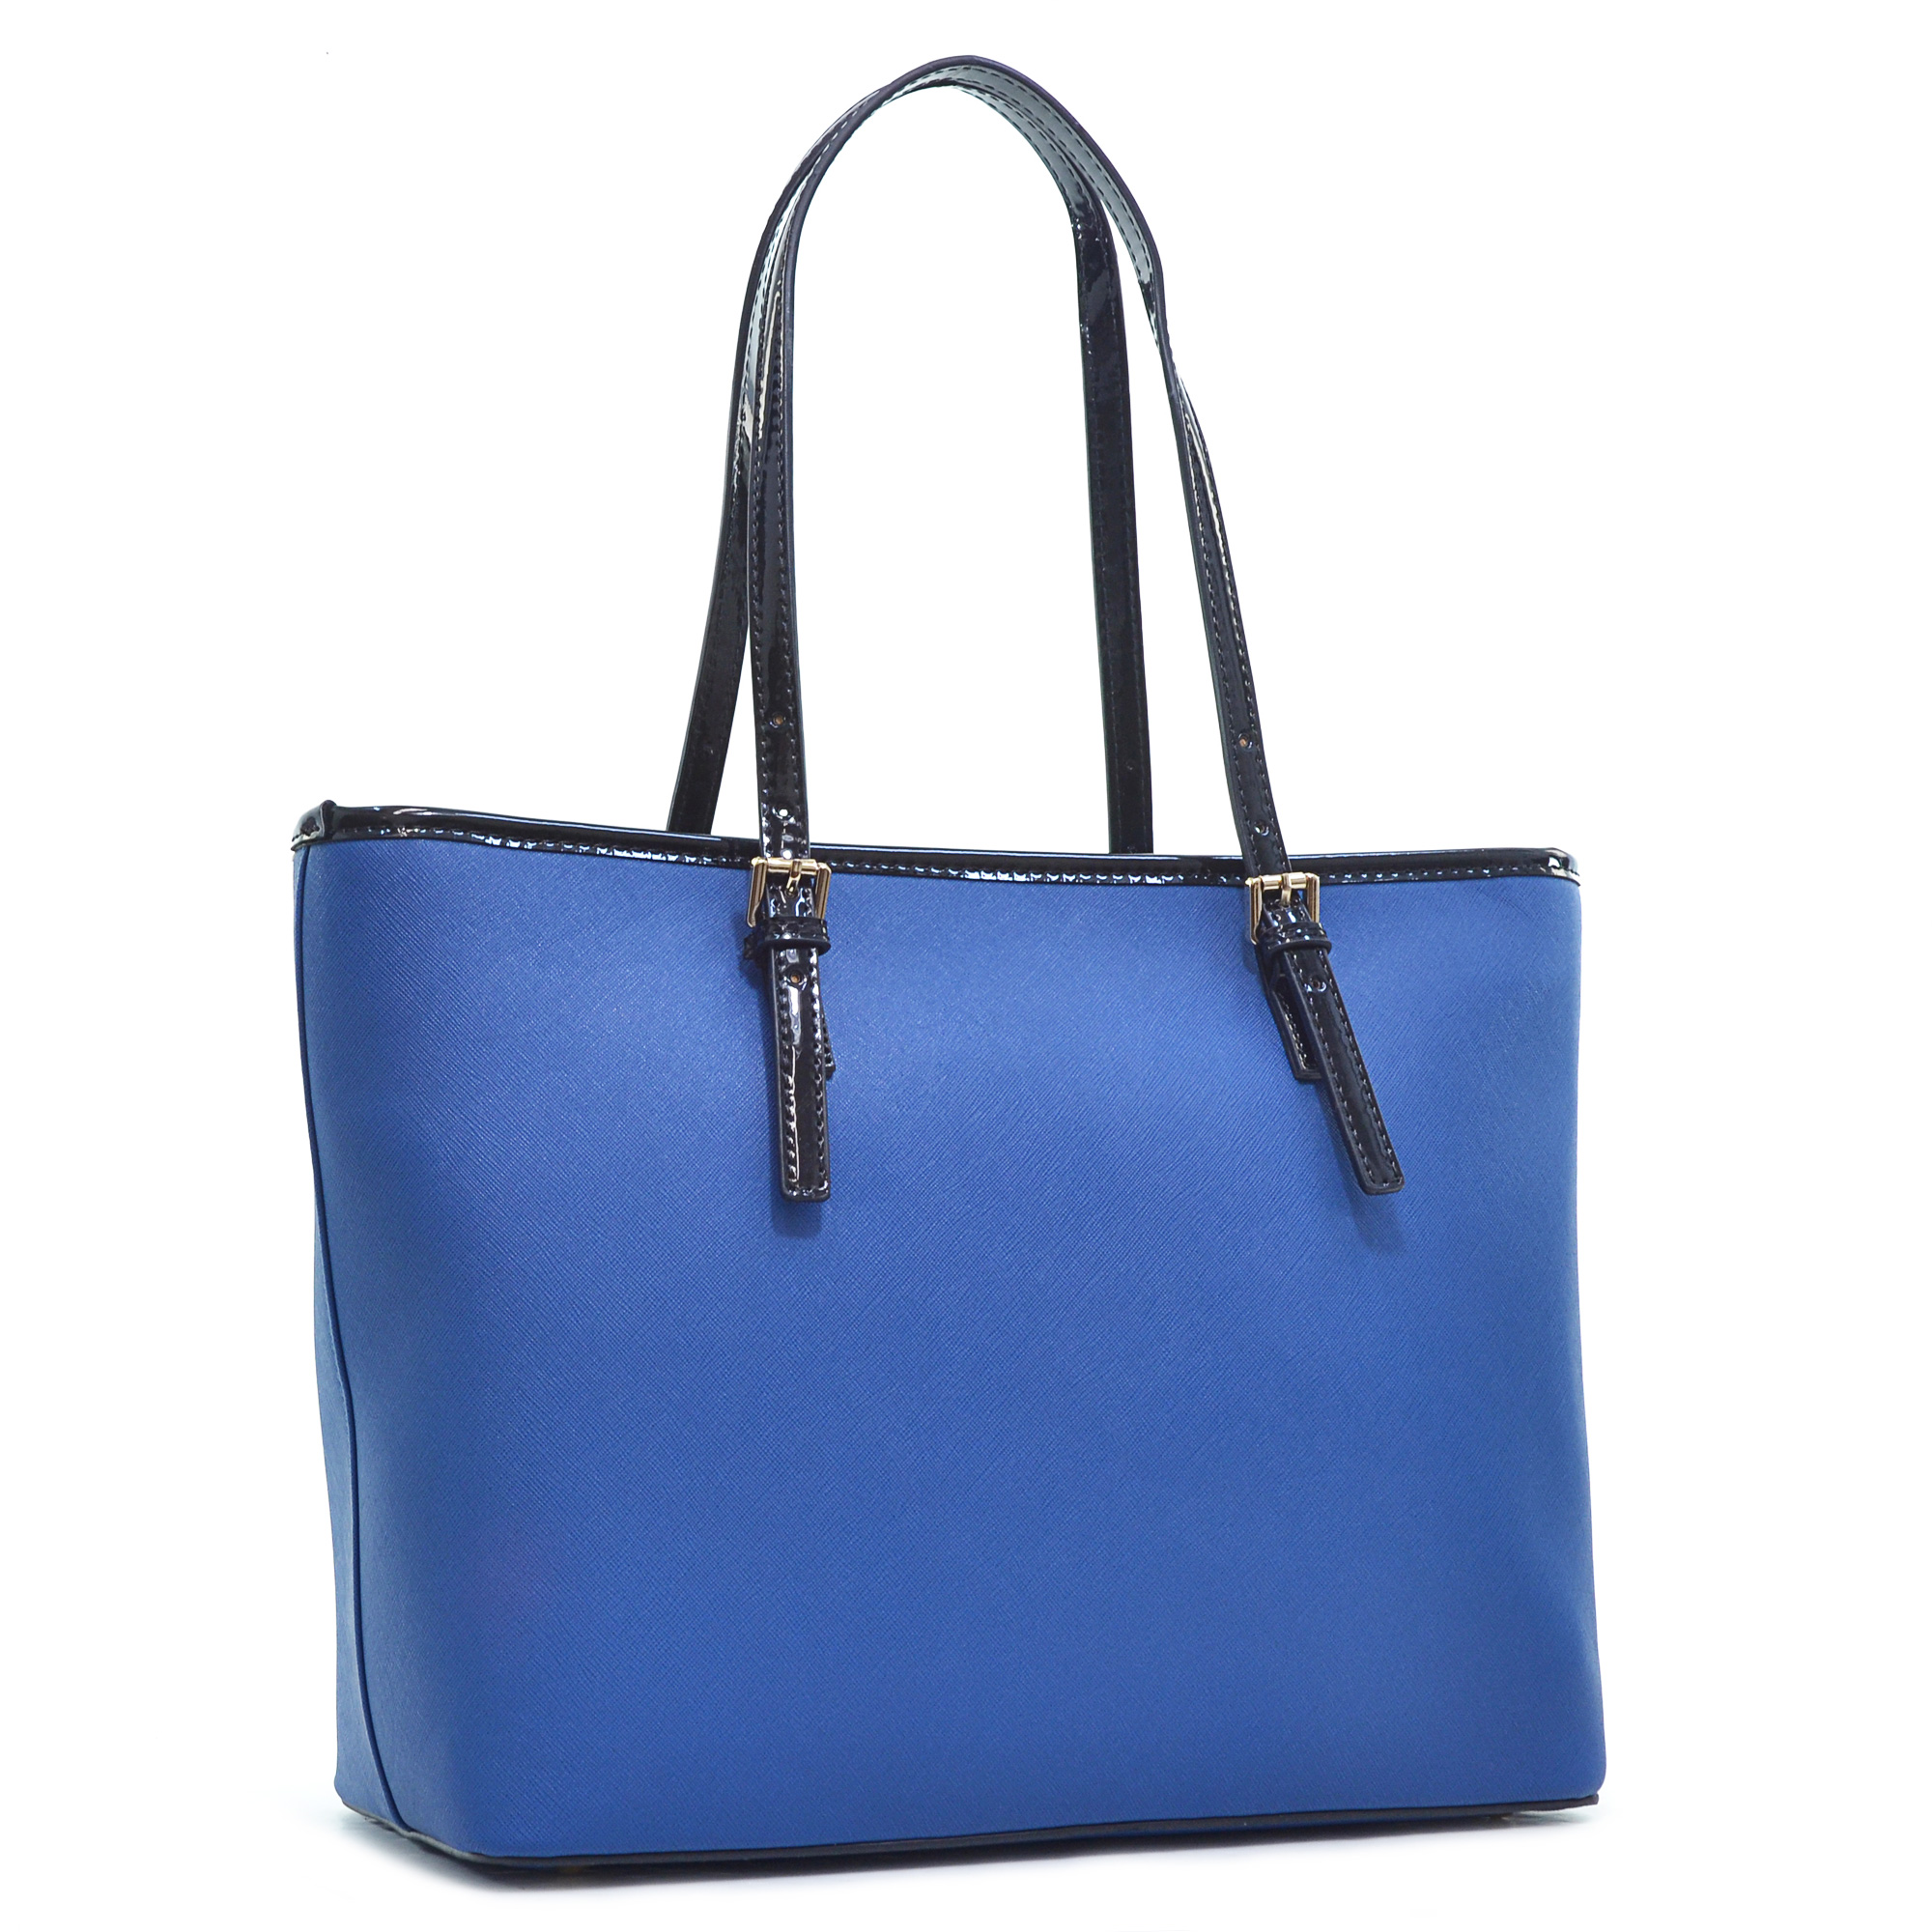 Dasein® Saffiano Leather Patent Trim Tote Bag